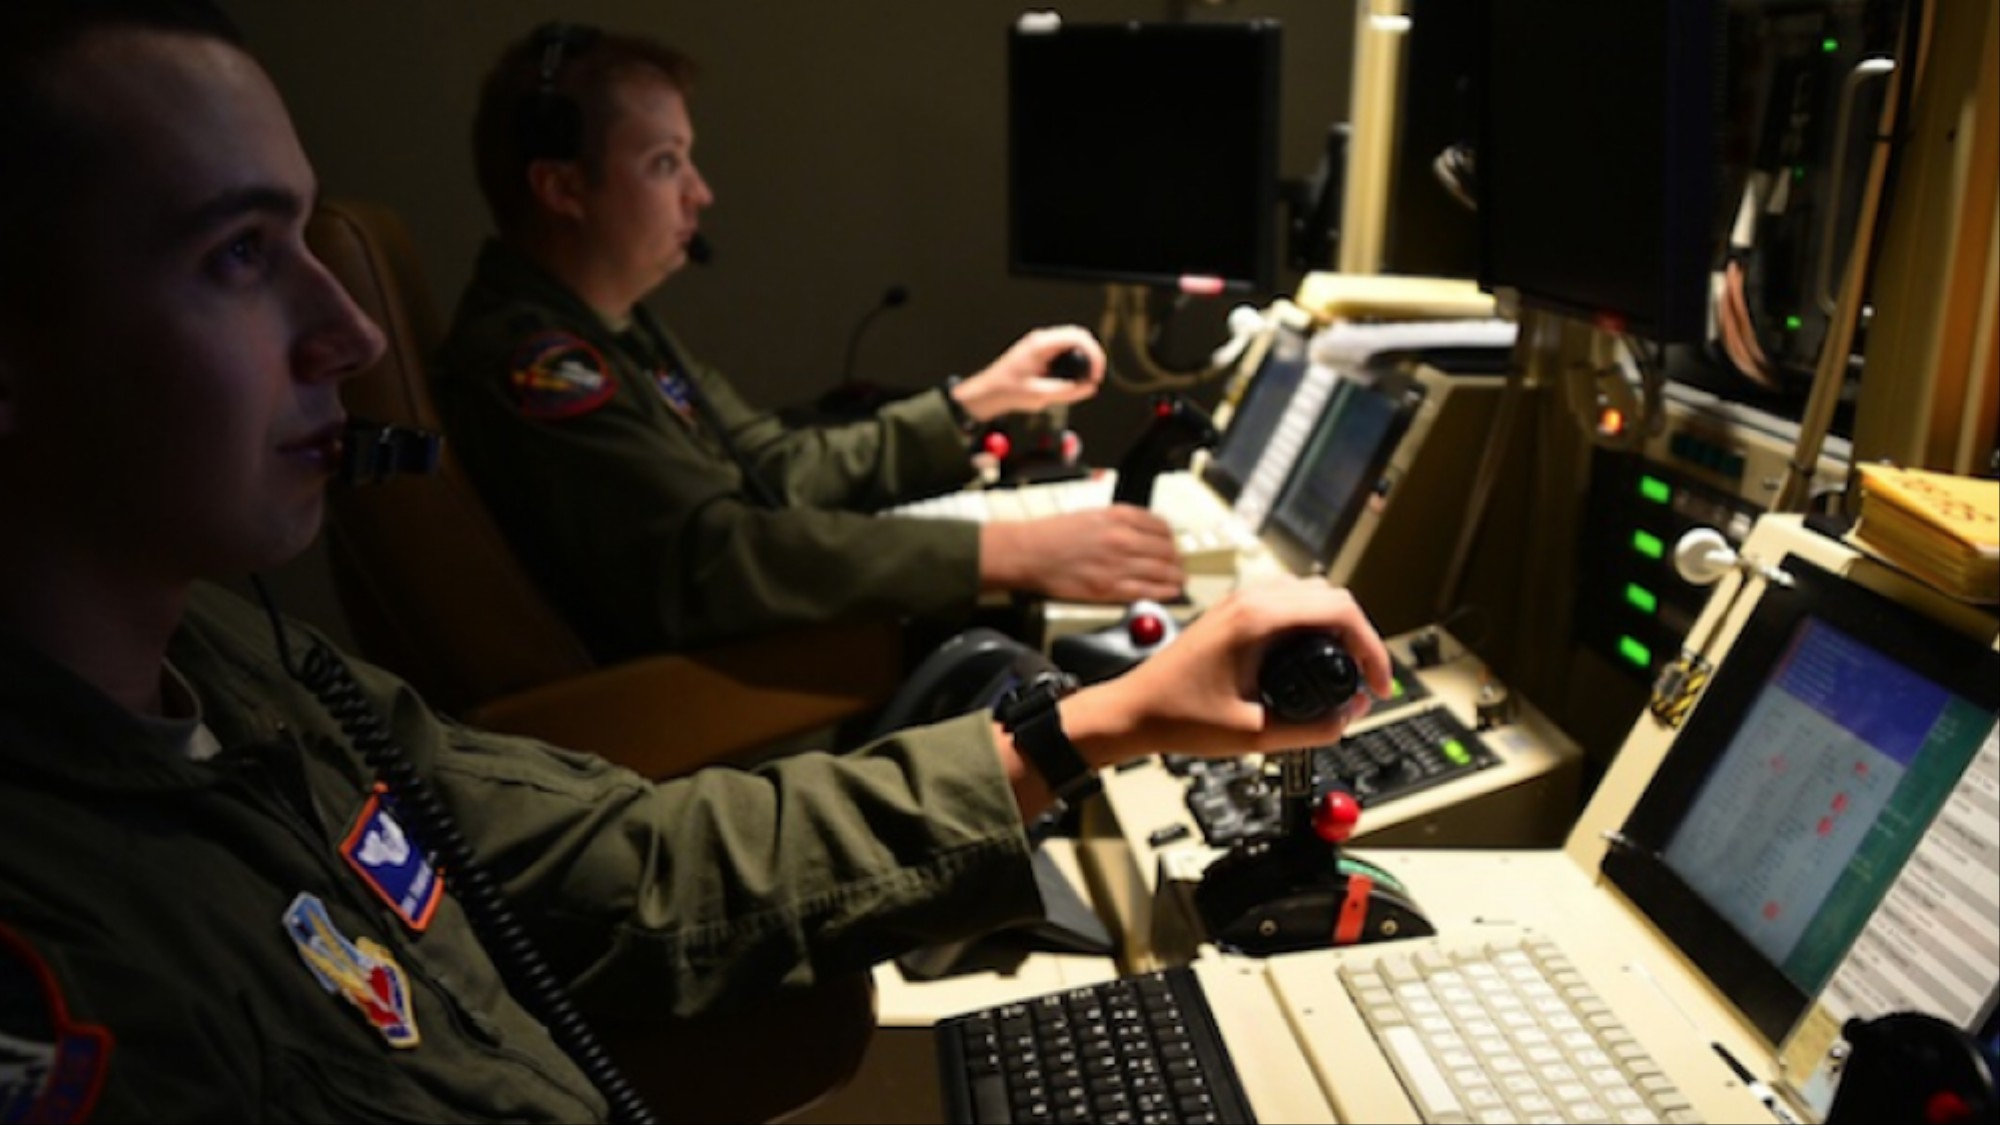 Promotion rates improving for Air Force drone pilots, GAO